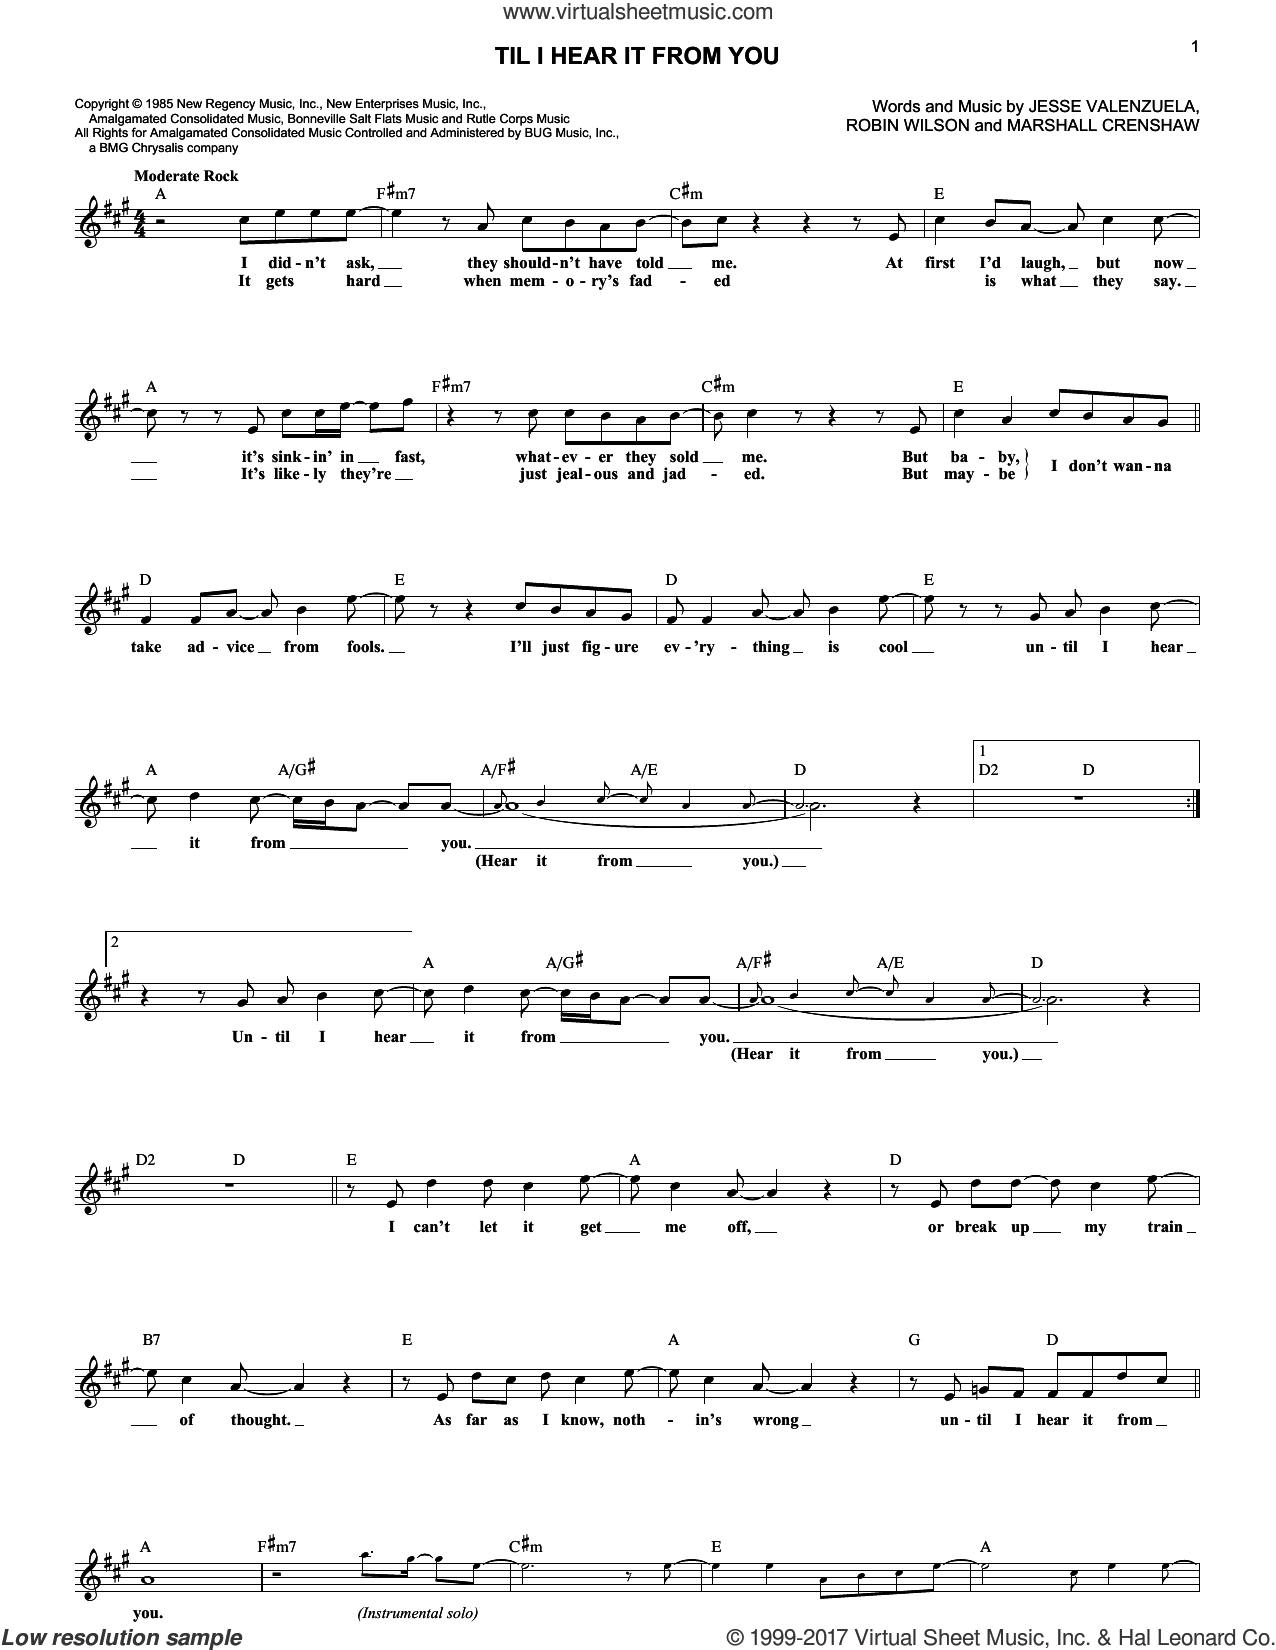 Til I Hear It From You sheet music for voice and other instruments (fake book) by Gin Blossoms, Jesse Valenzuela, Marshall Crenshaw and Robin Wilson. Score Image Preview.